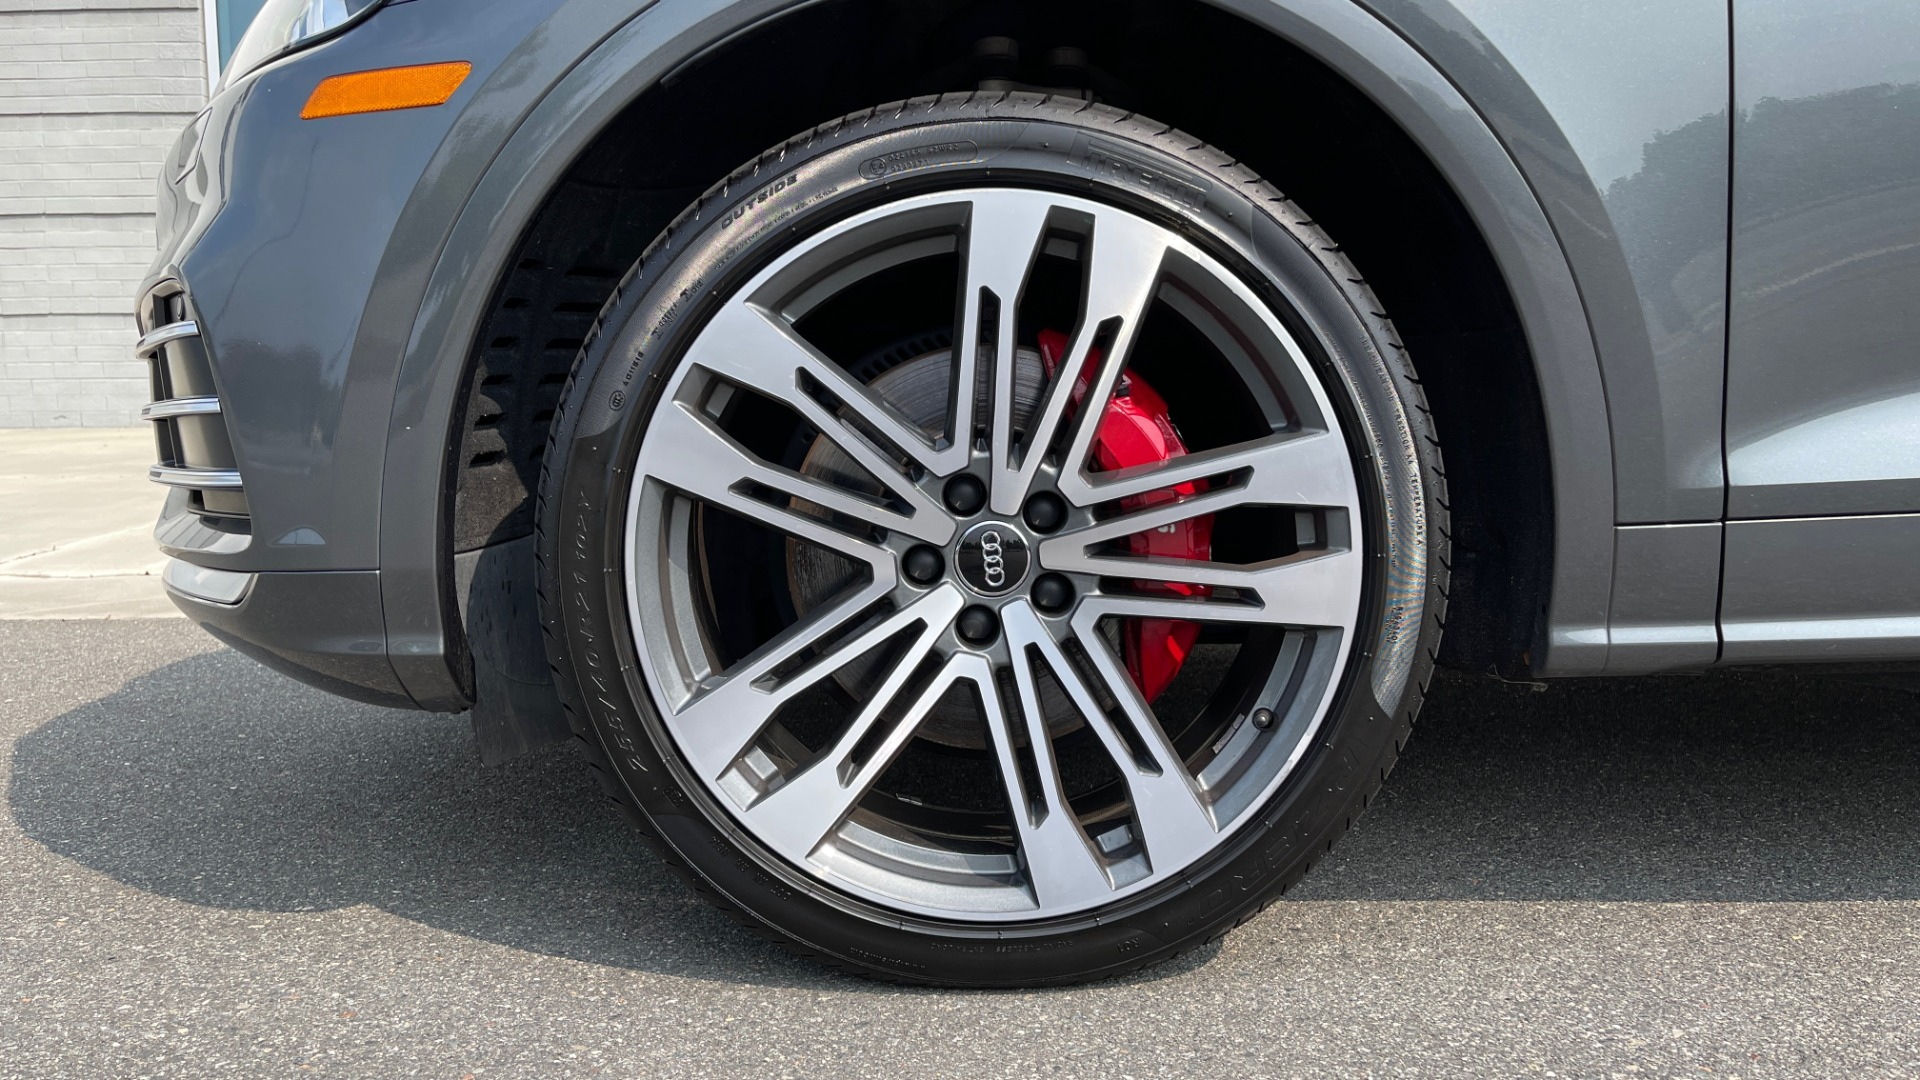 Used 2018 Audi SQ5 PREMIUM PLUS / S-SPORT / NAV / B&O SND / SUNROOF / REARVIEW for sale $43,995 at Formula Imports in Charlotte NC 28227 77